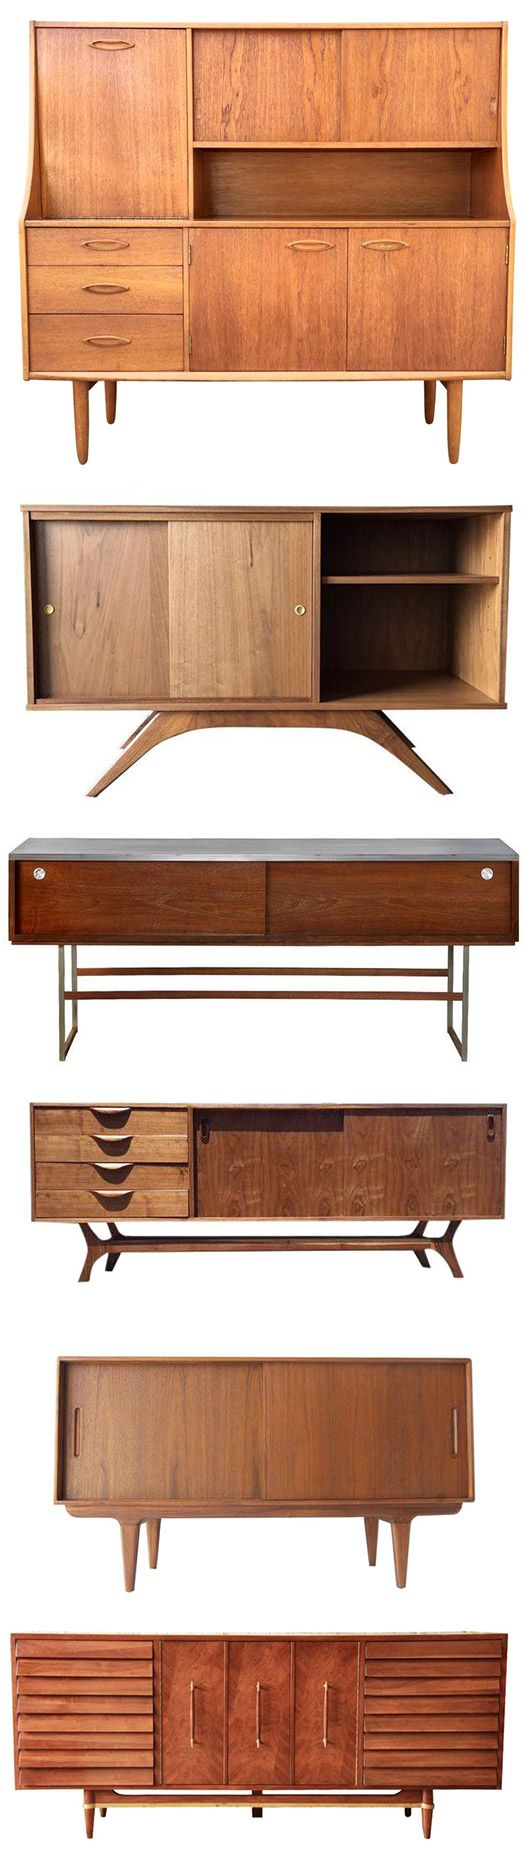 the beauty of credenzas.